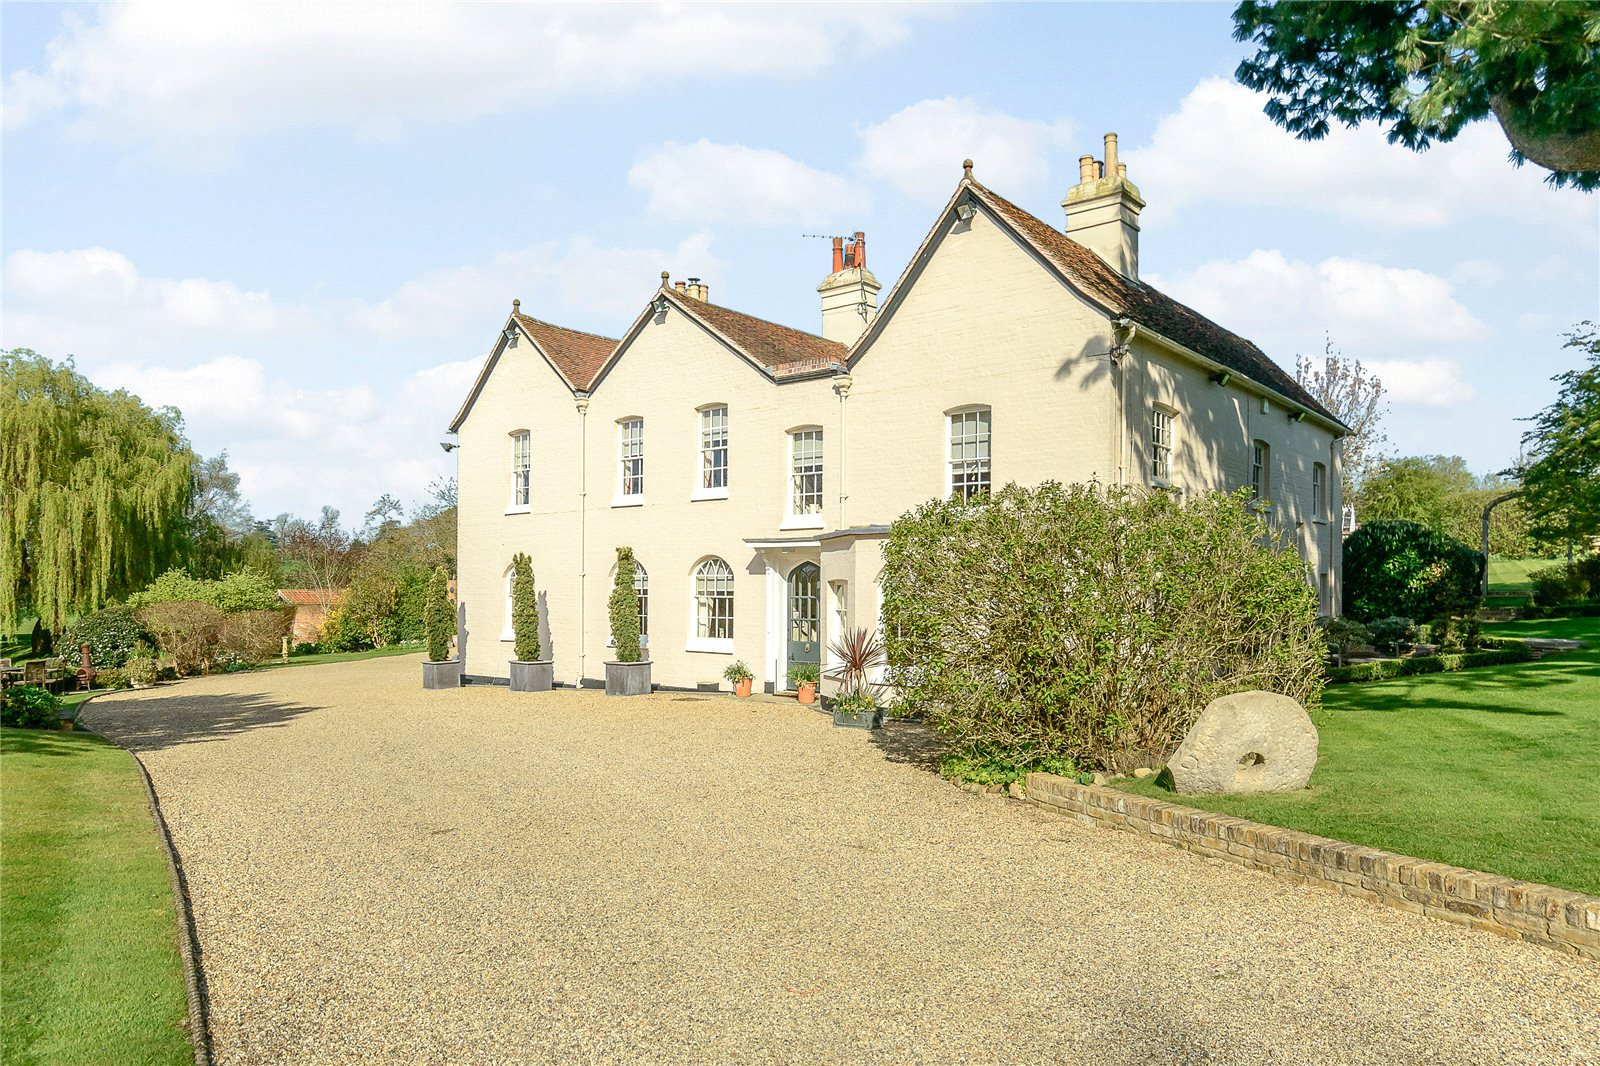 Additional photo for property listing at Hunsdon Pound, Stanstead Abbotts, Ware, Hertfordshire, SG12 Ware, England